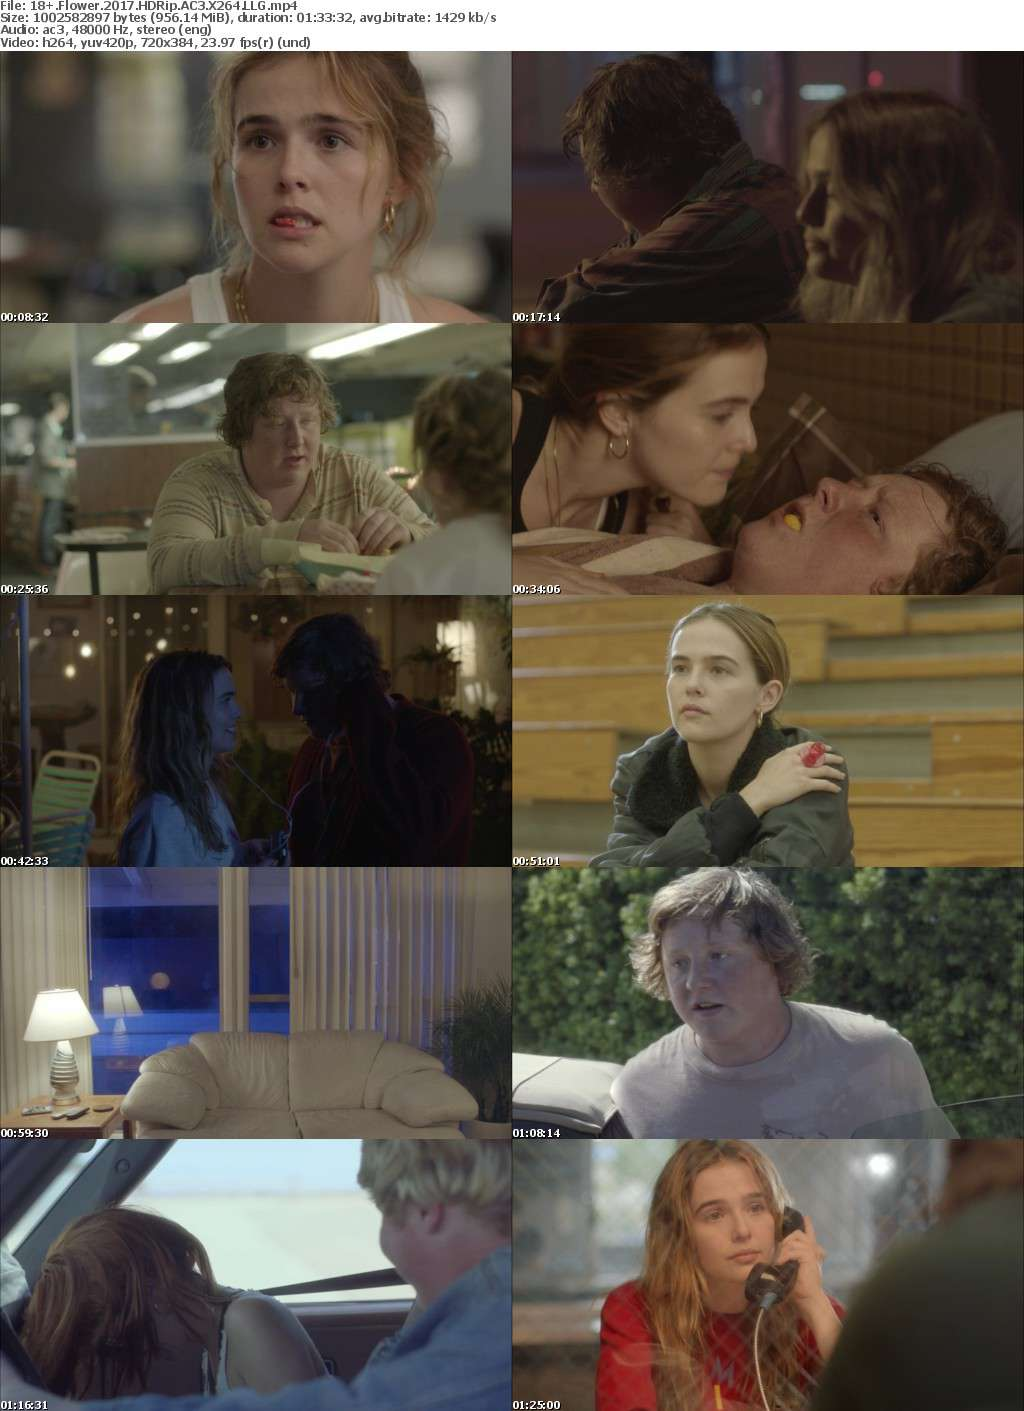 Flower (2017) HDRip AC3 X264 LLG